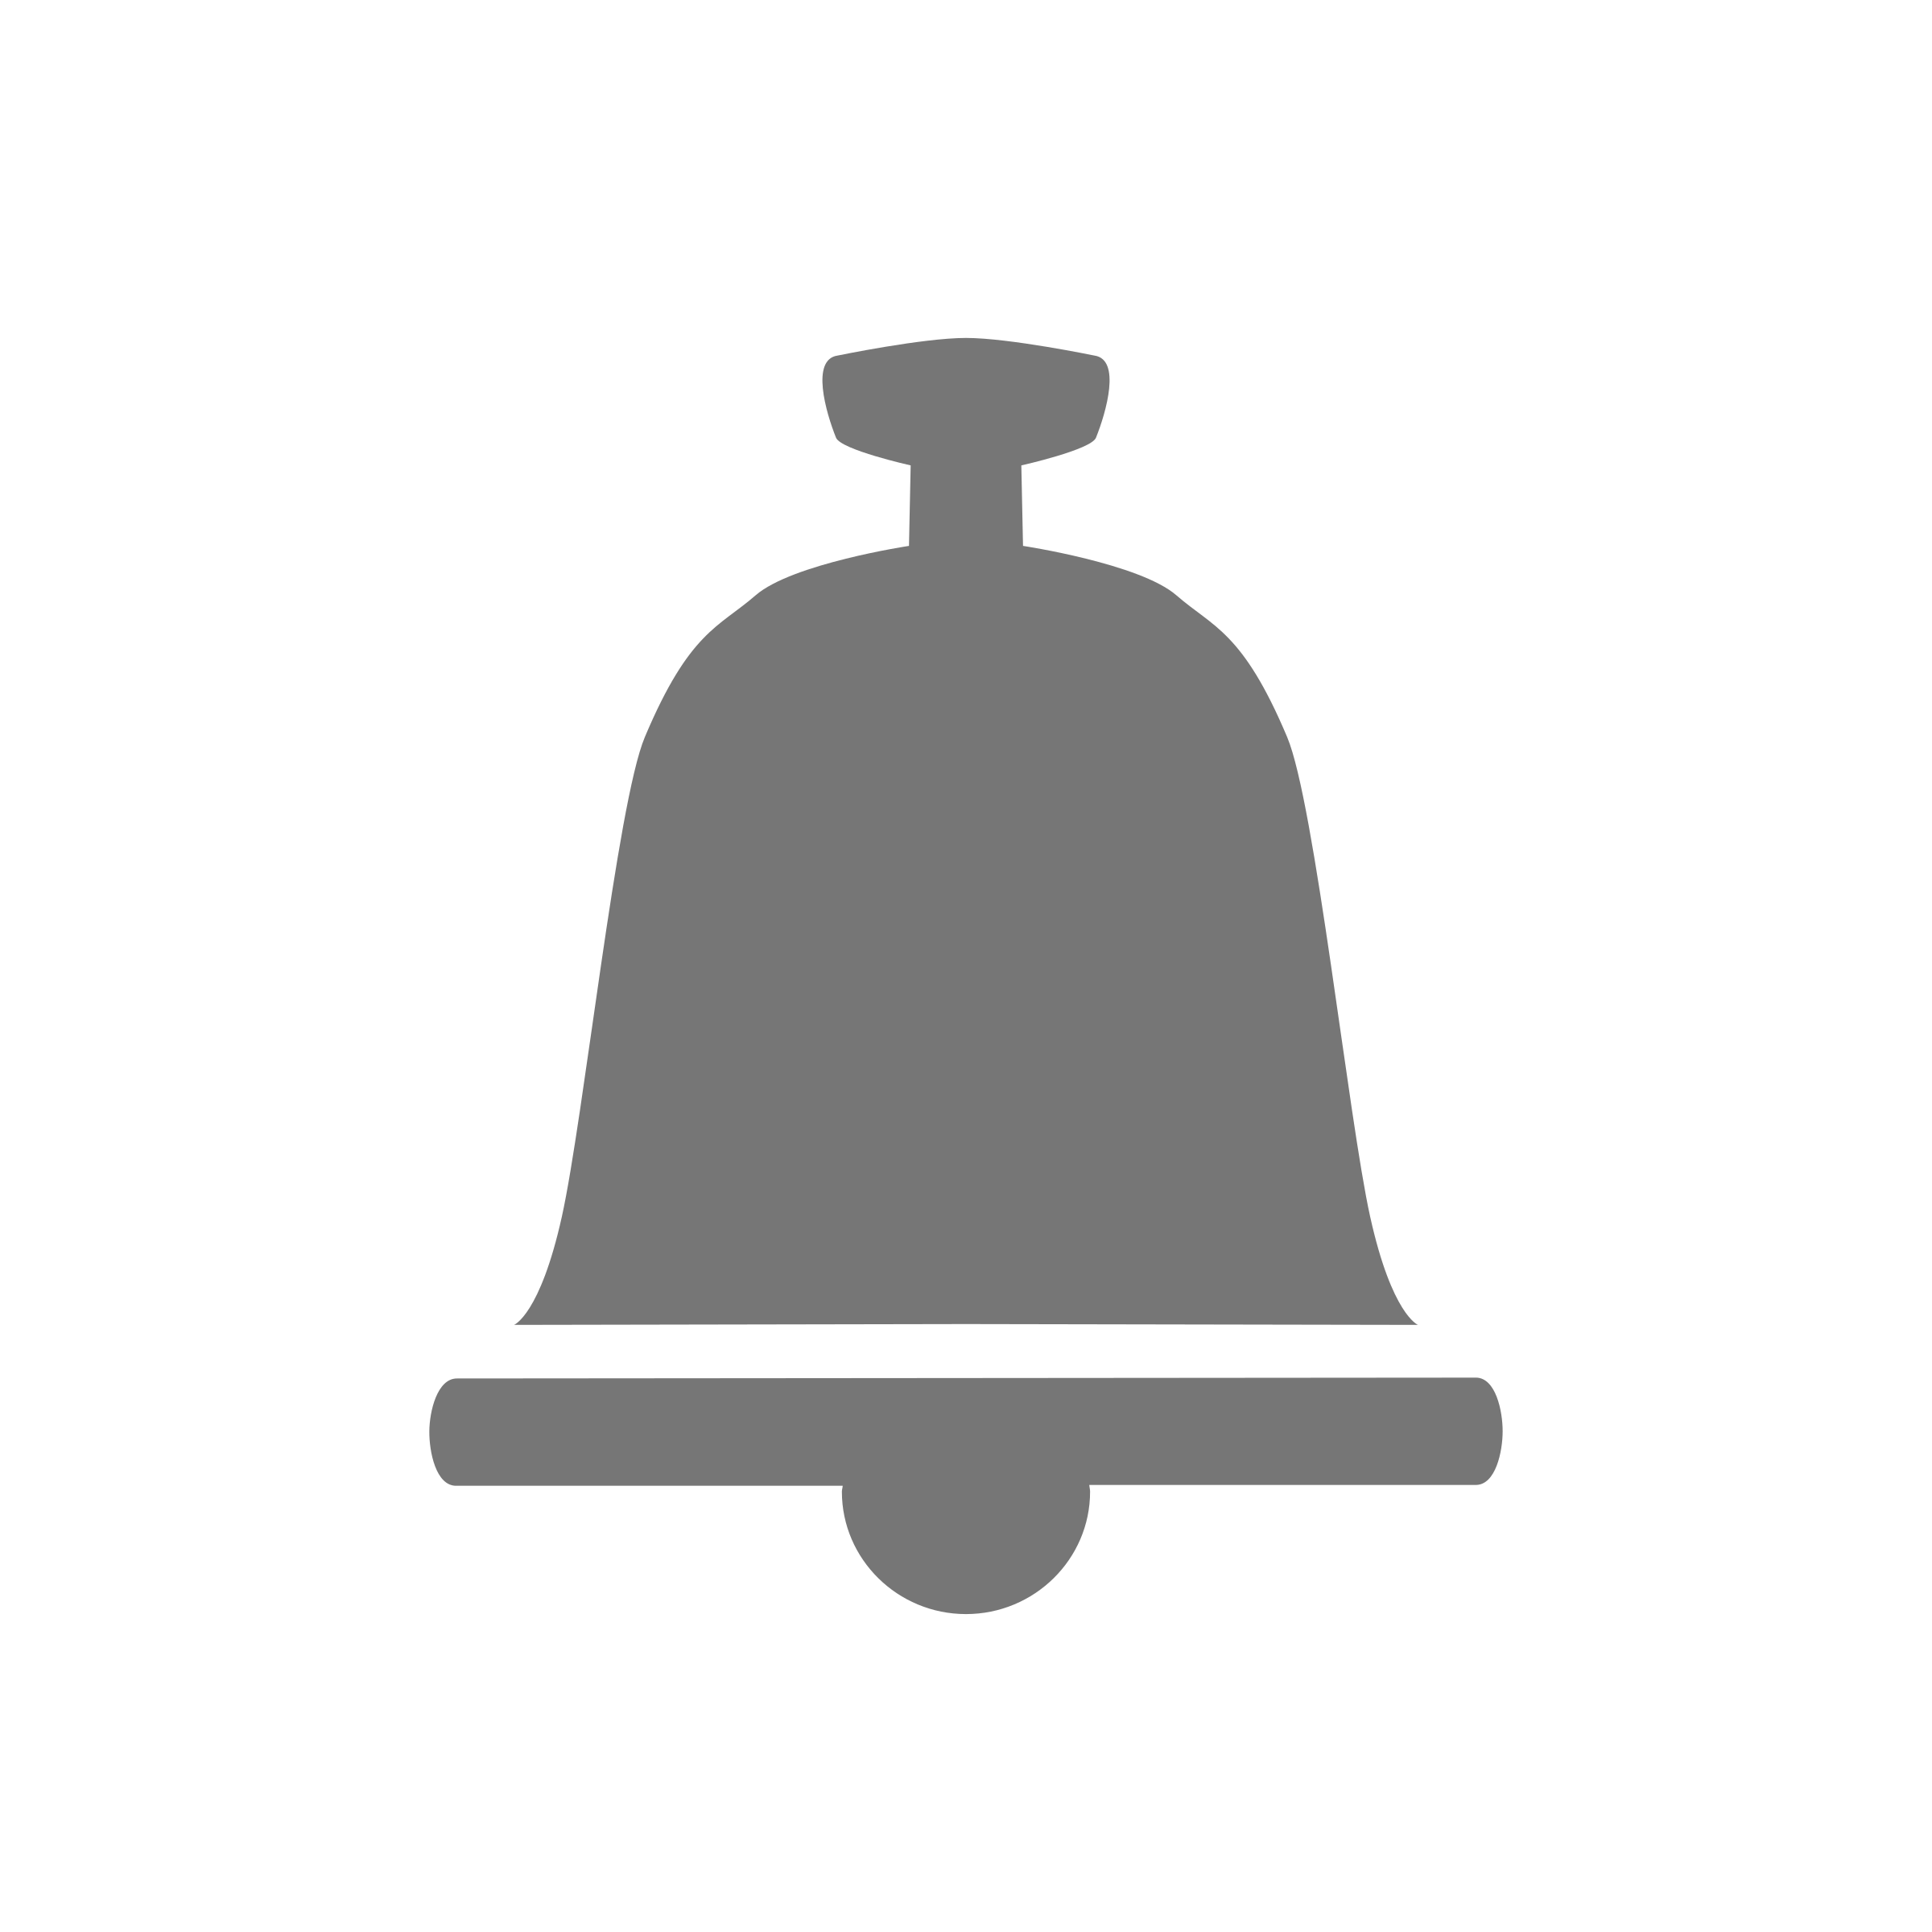 Drawing Bell Icon image #16614